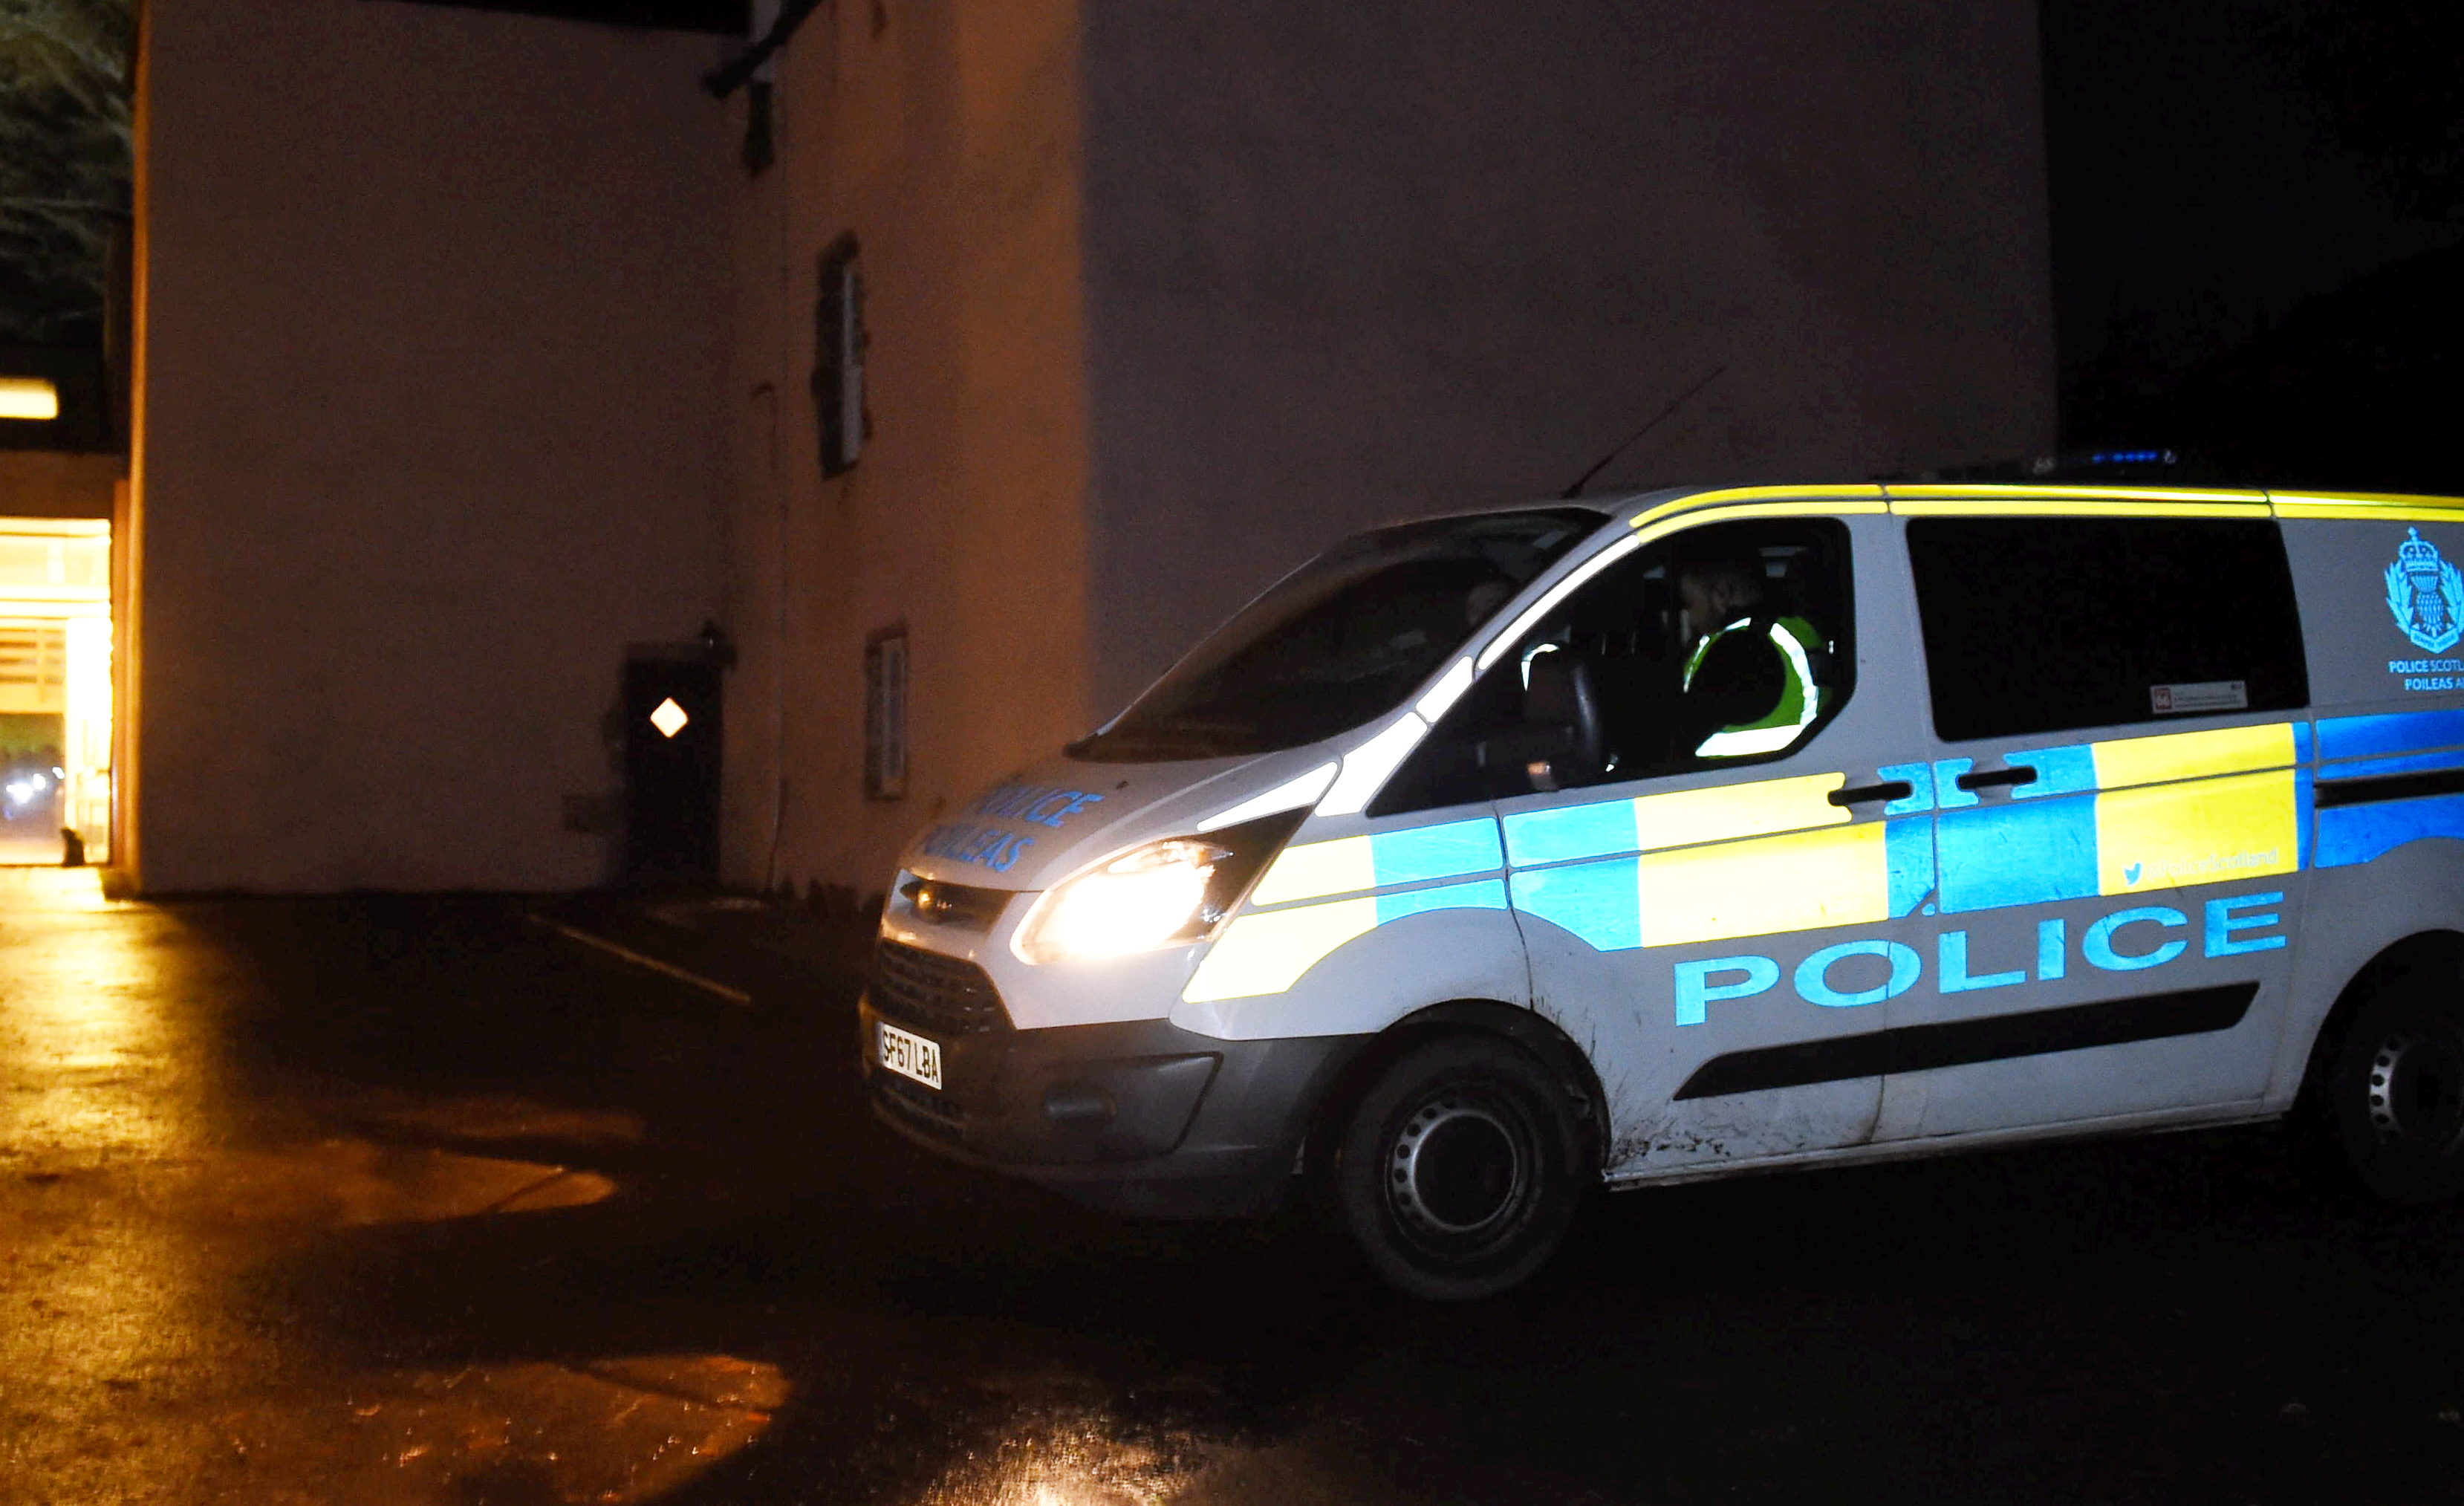 Police at the scene in Rickarton area  Picture by Paul Glendell